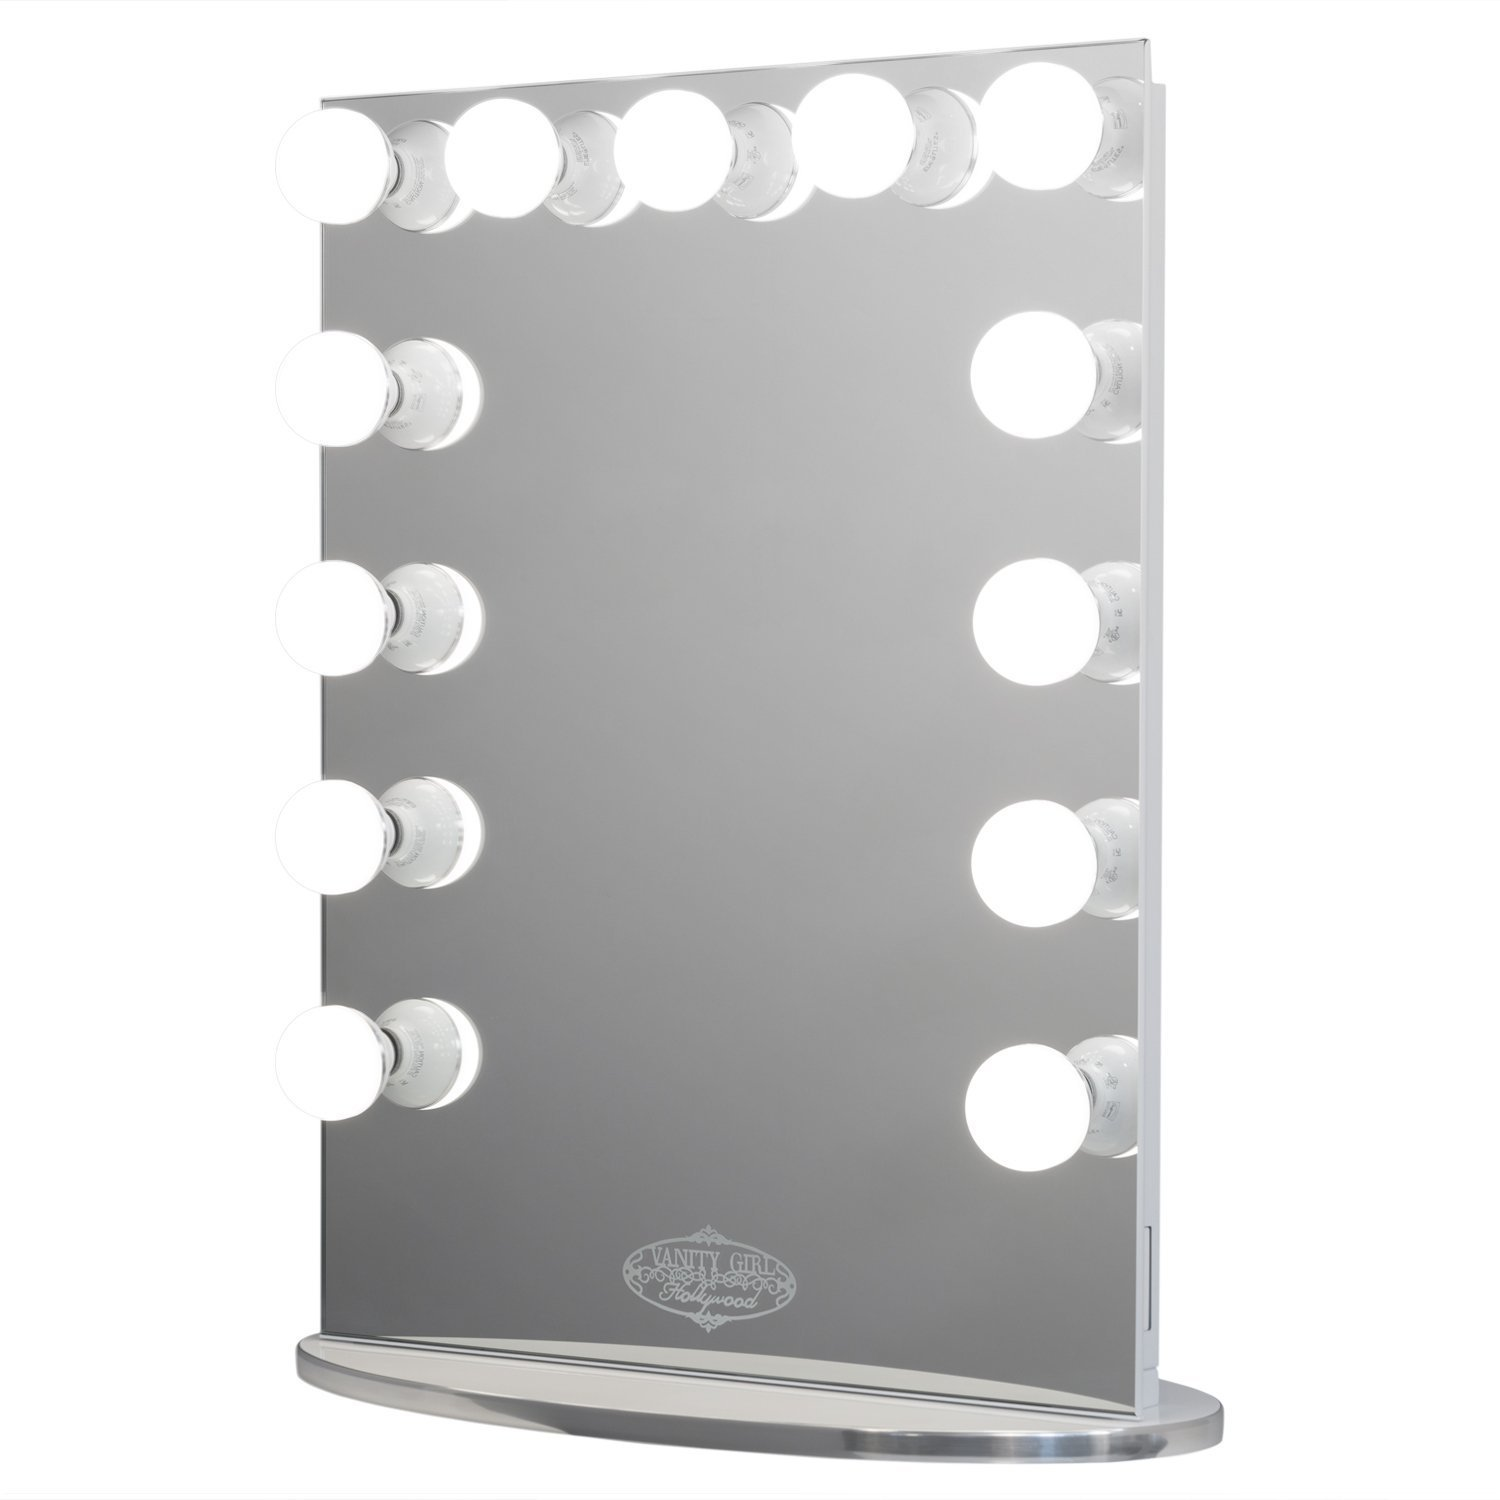 Vanity Girl Hollywood Infinity Mirror. Lighted (13 Bulb) Vanity Mirror with Dimmer by Vanity Girl Hollywood